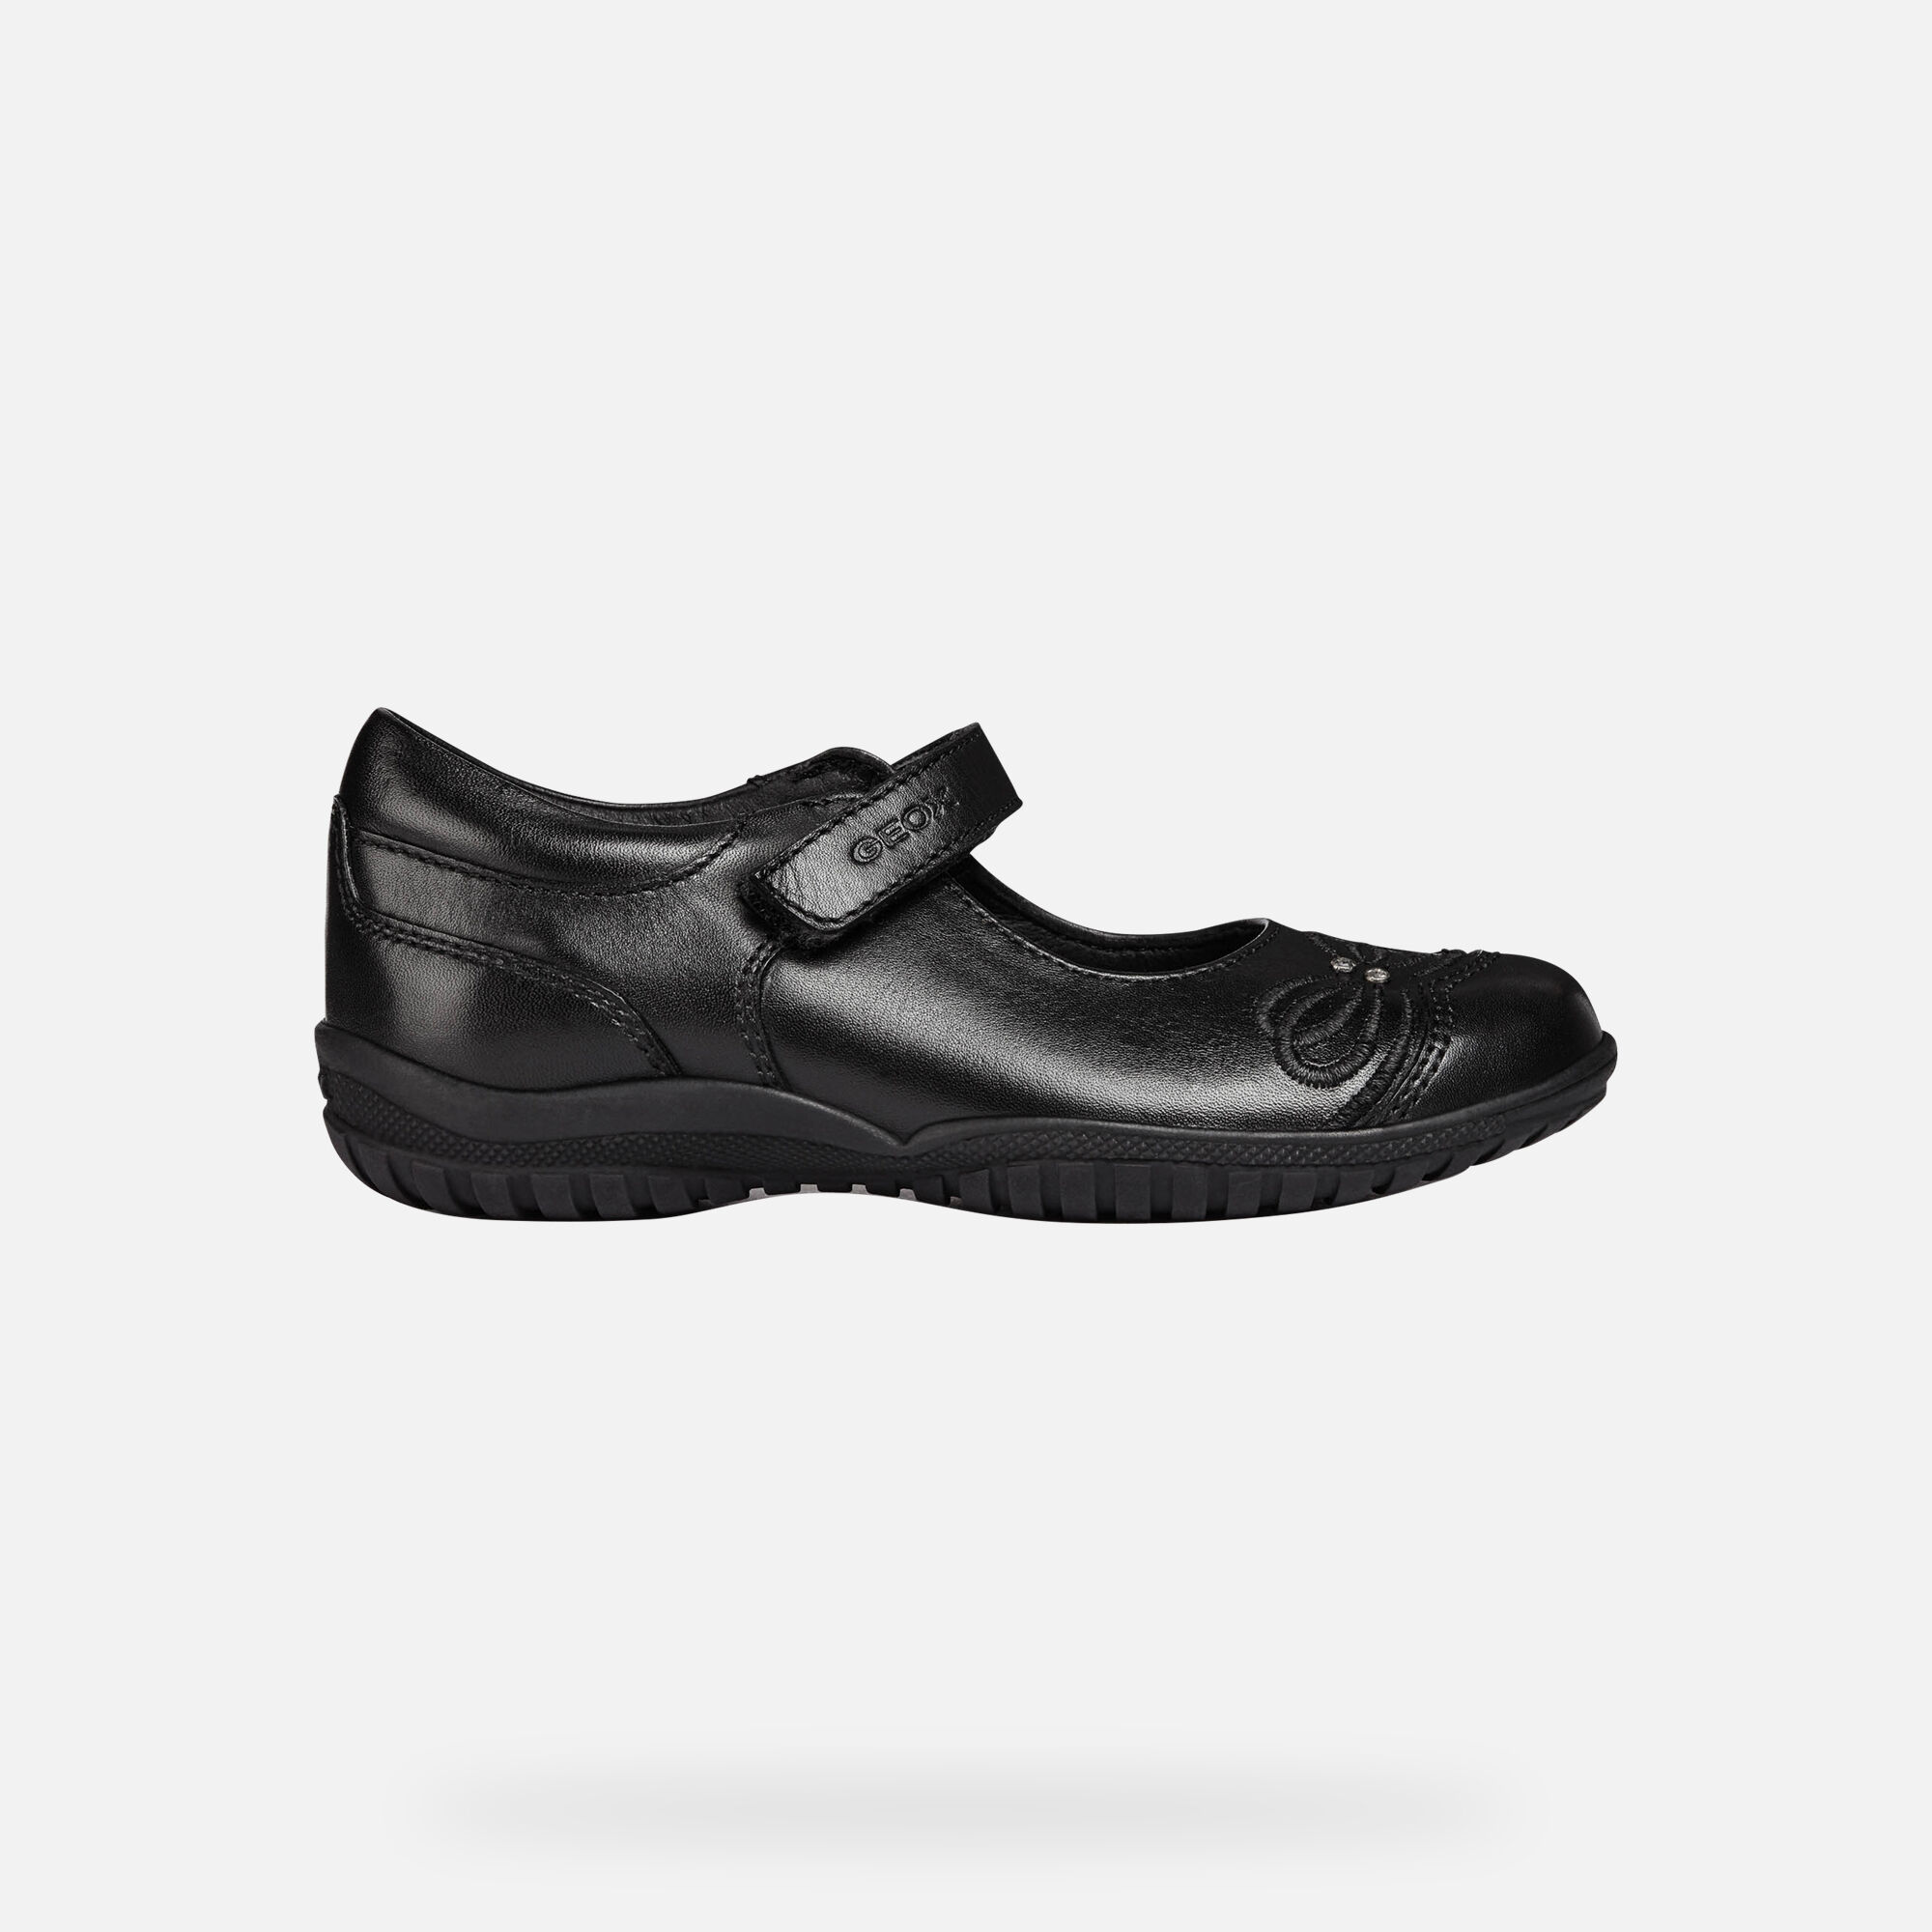 Geox JR SHADOW: Black Junior Girl Ballerina | Geox